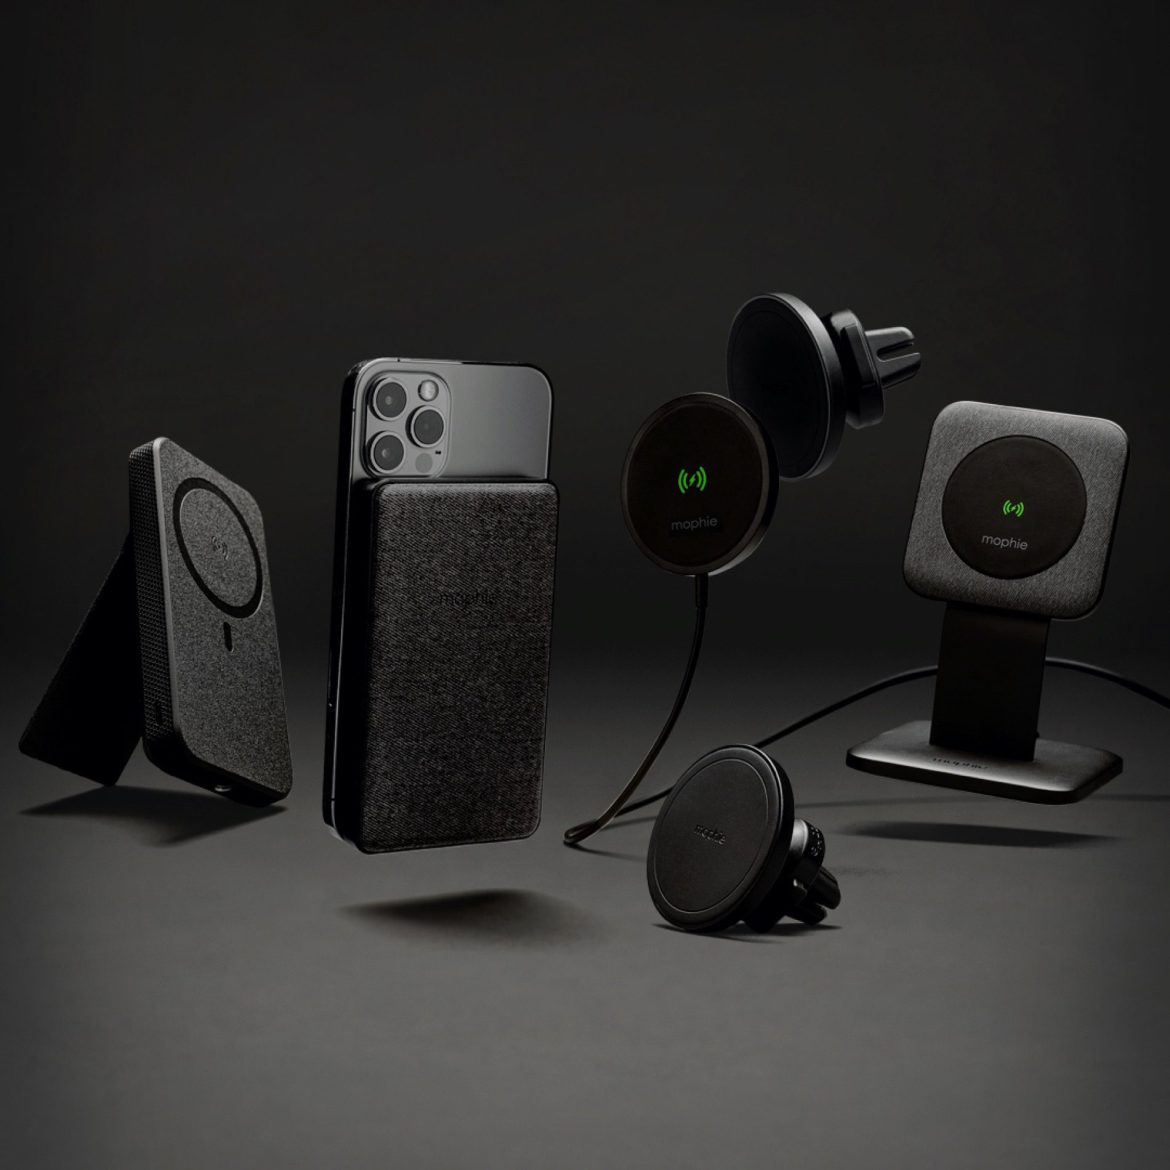 Introducing: mophie snap collection